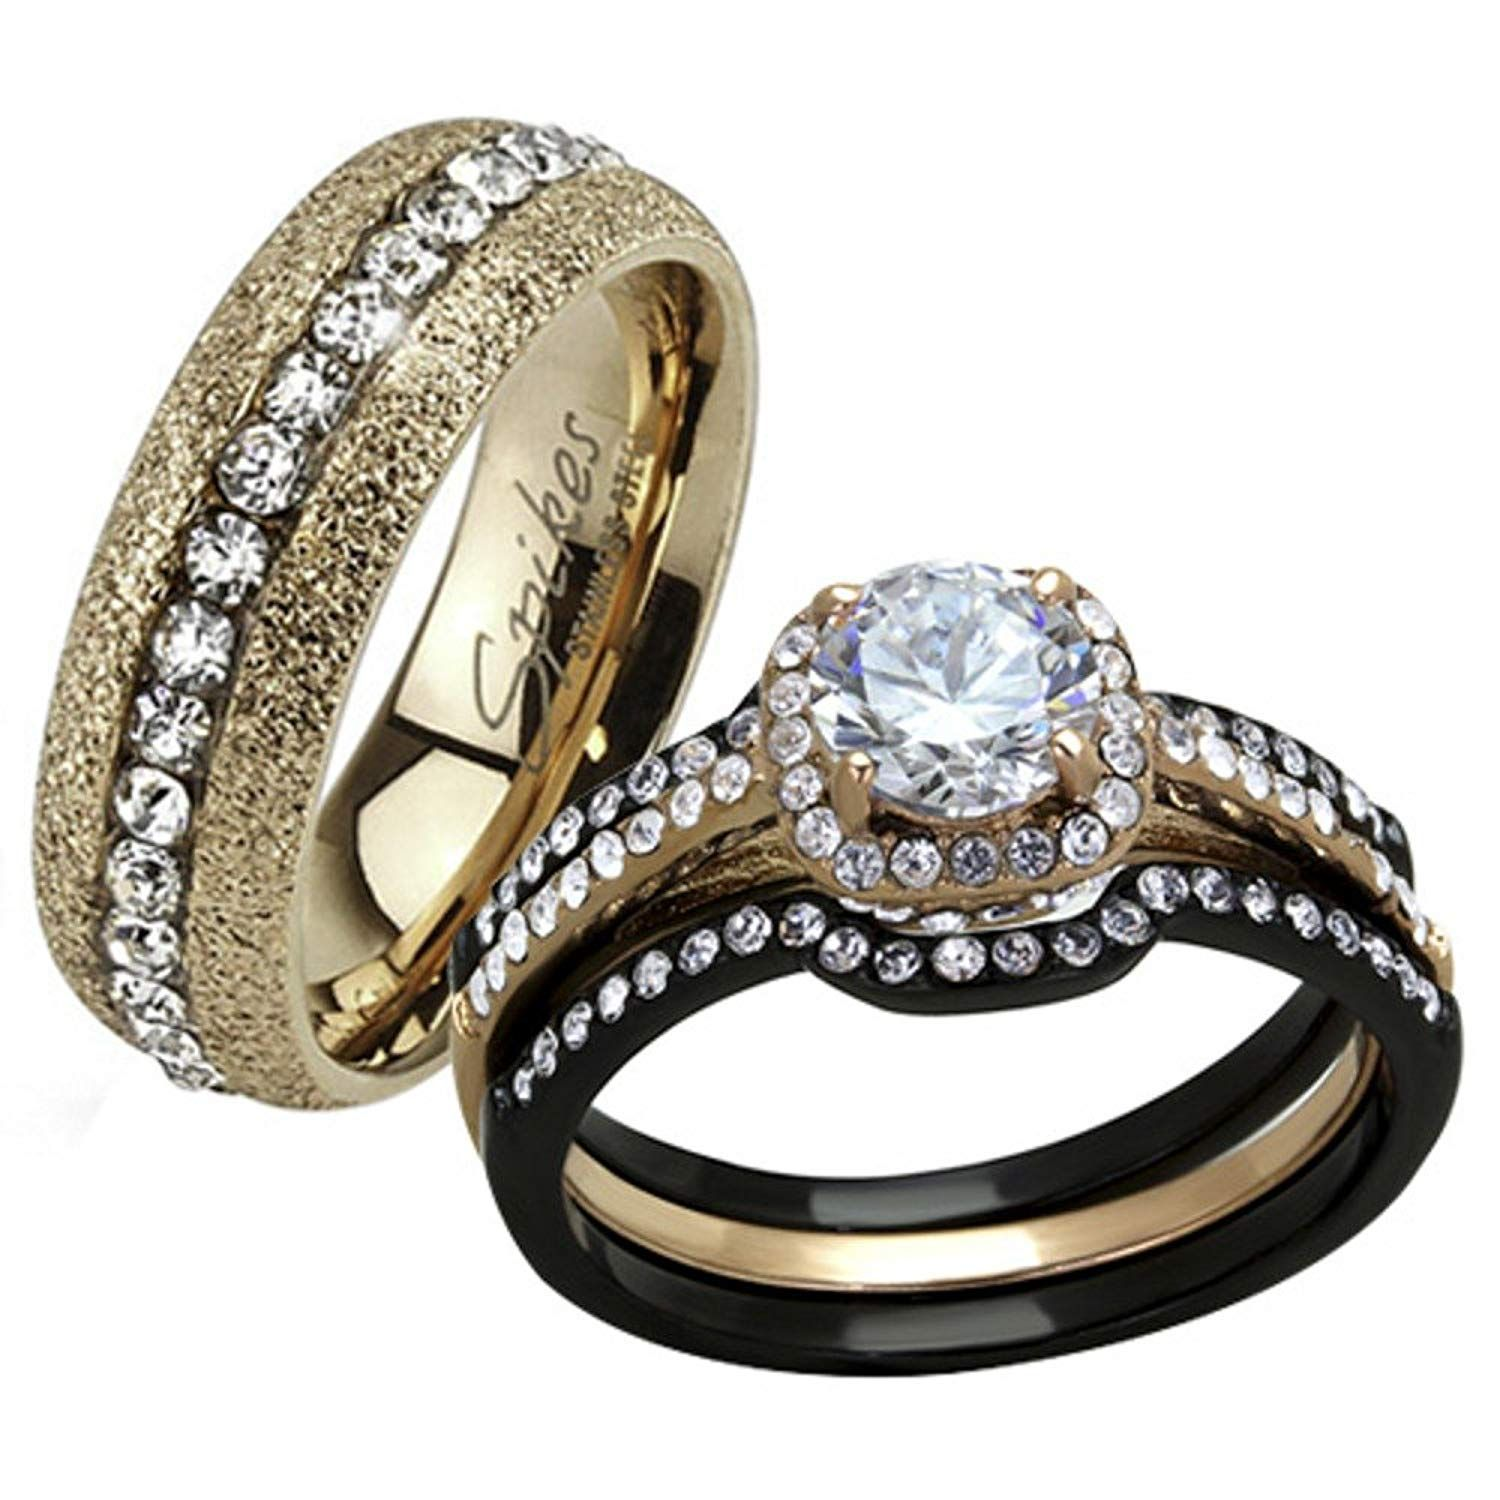 HIS HERS 4 PC BLACK and ROSE GOLD STAINLESS STEEL WEDDING